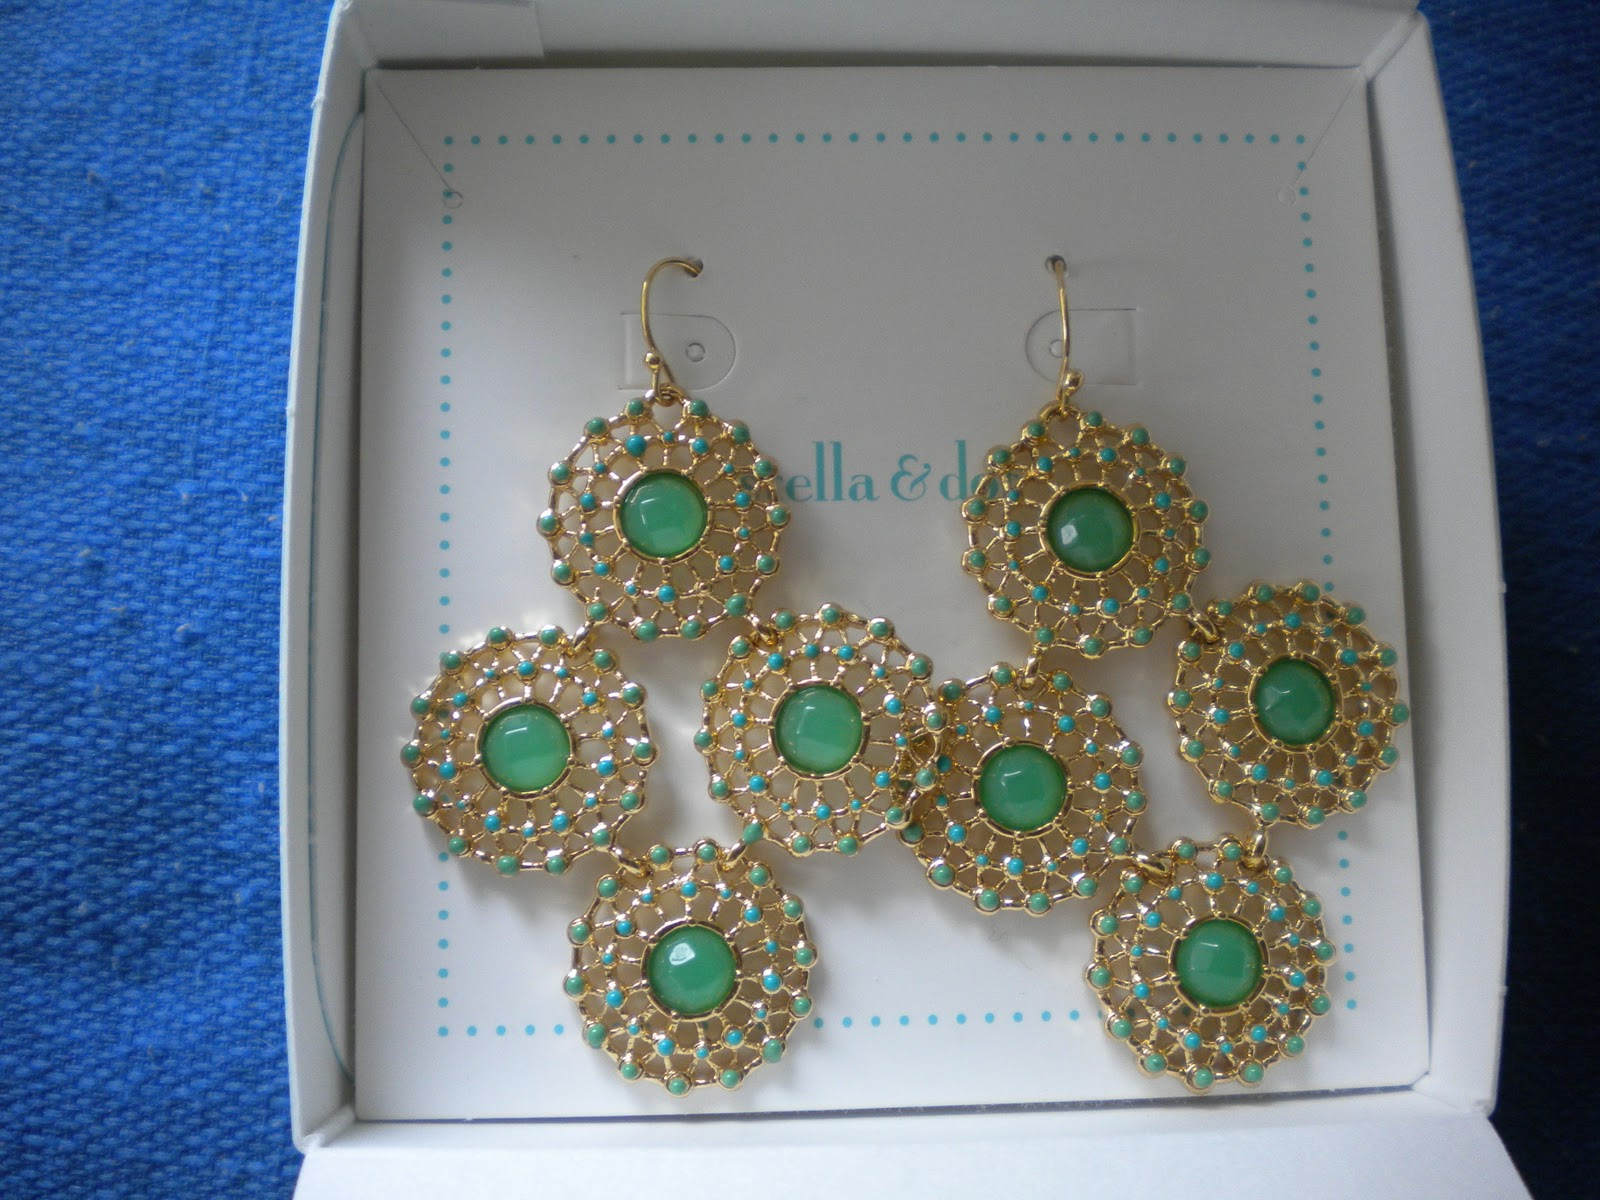 Mommaista meets shopaholic stella dot sample sale garden party chandelier earrings greengold retail price 5400 arubaitofo Image collections